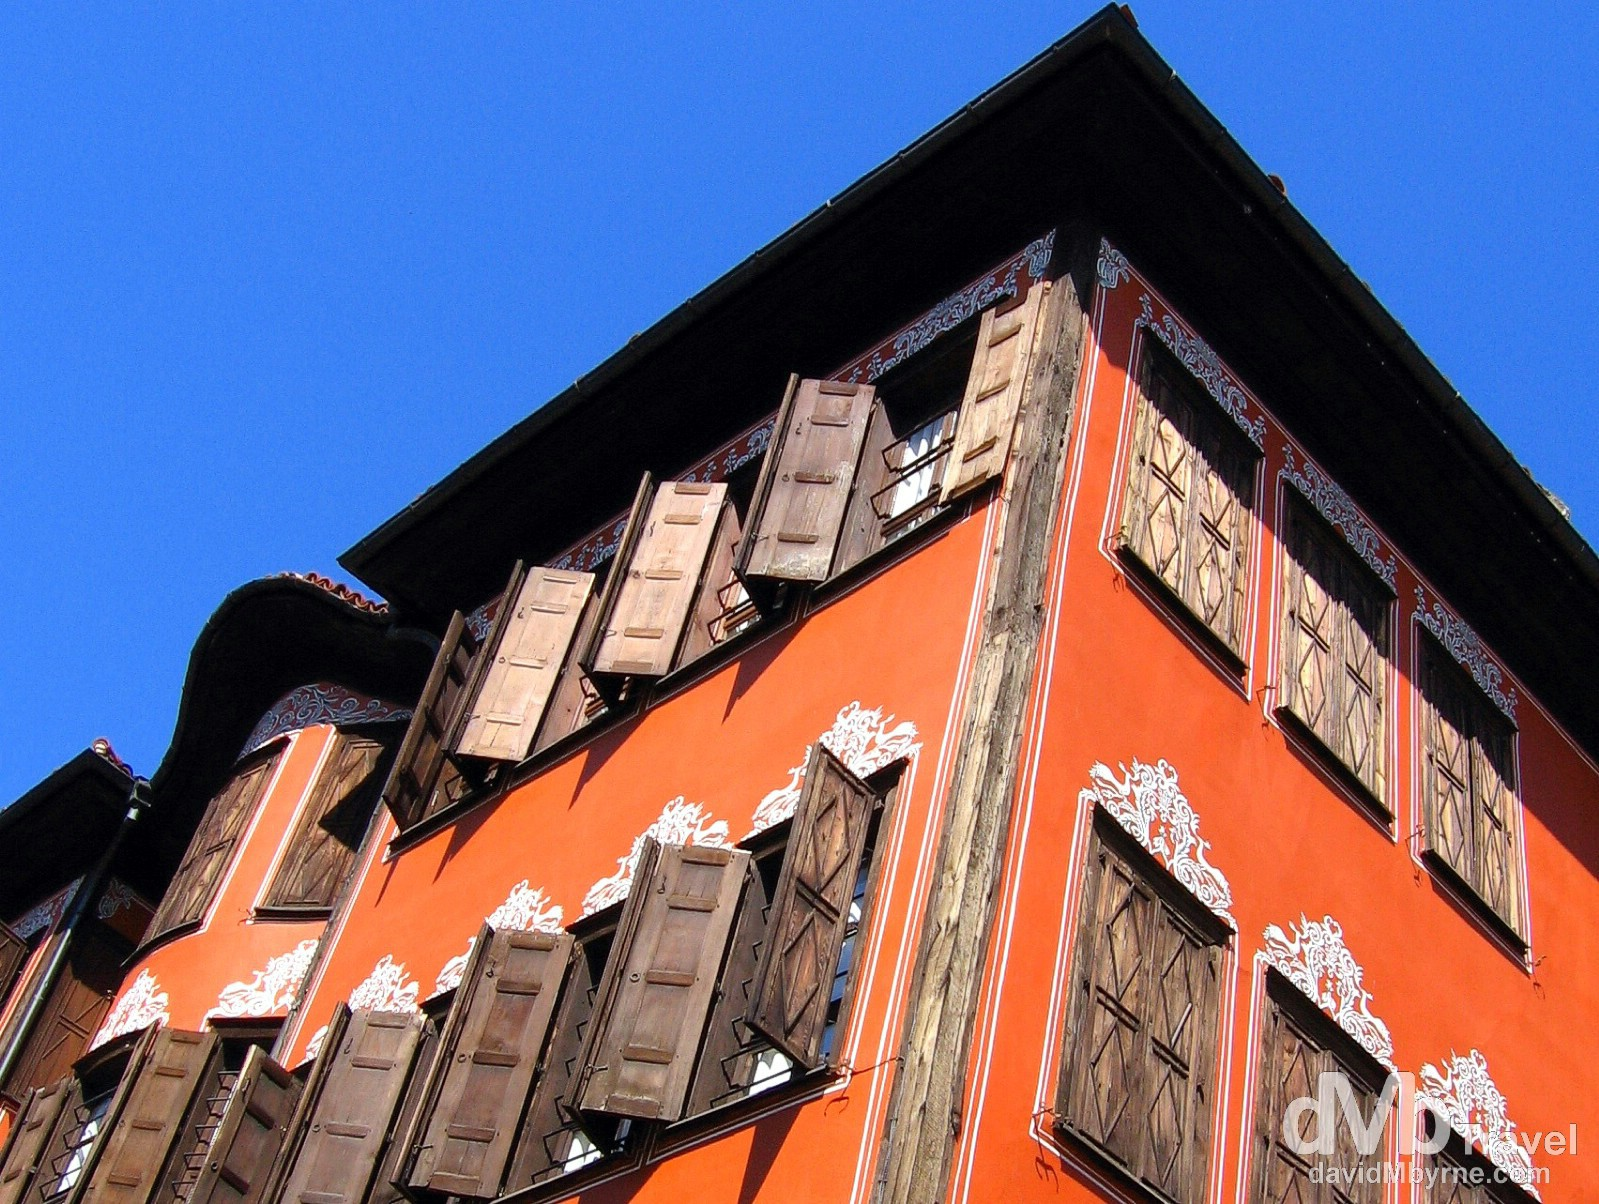 Colourful buildings in Old Town, Plovdiv, Bulgaria. September 17th, 2007.